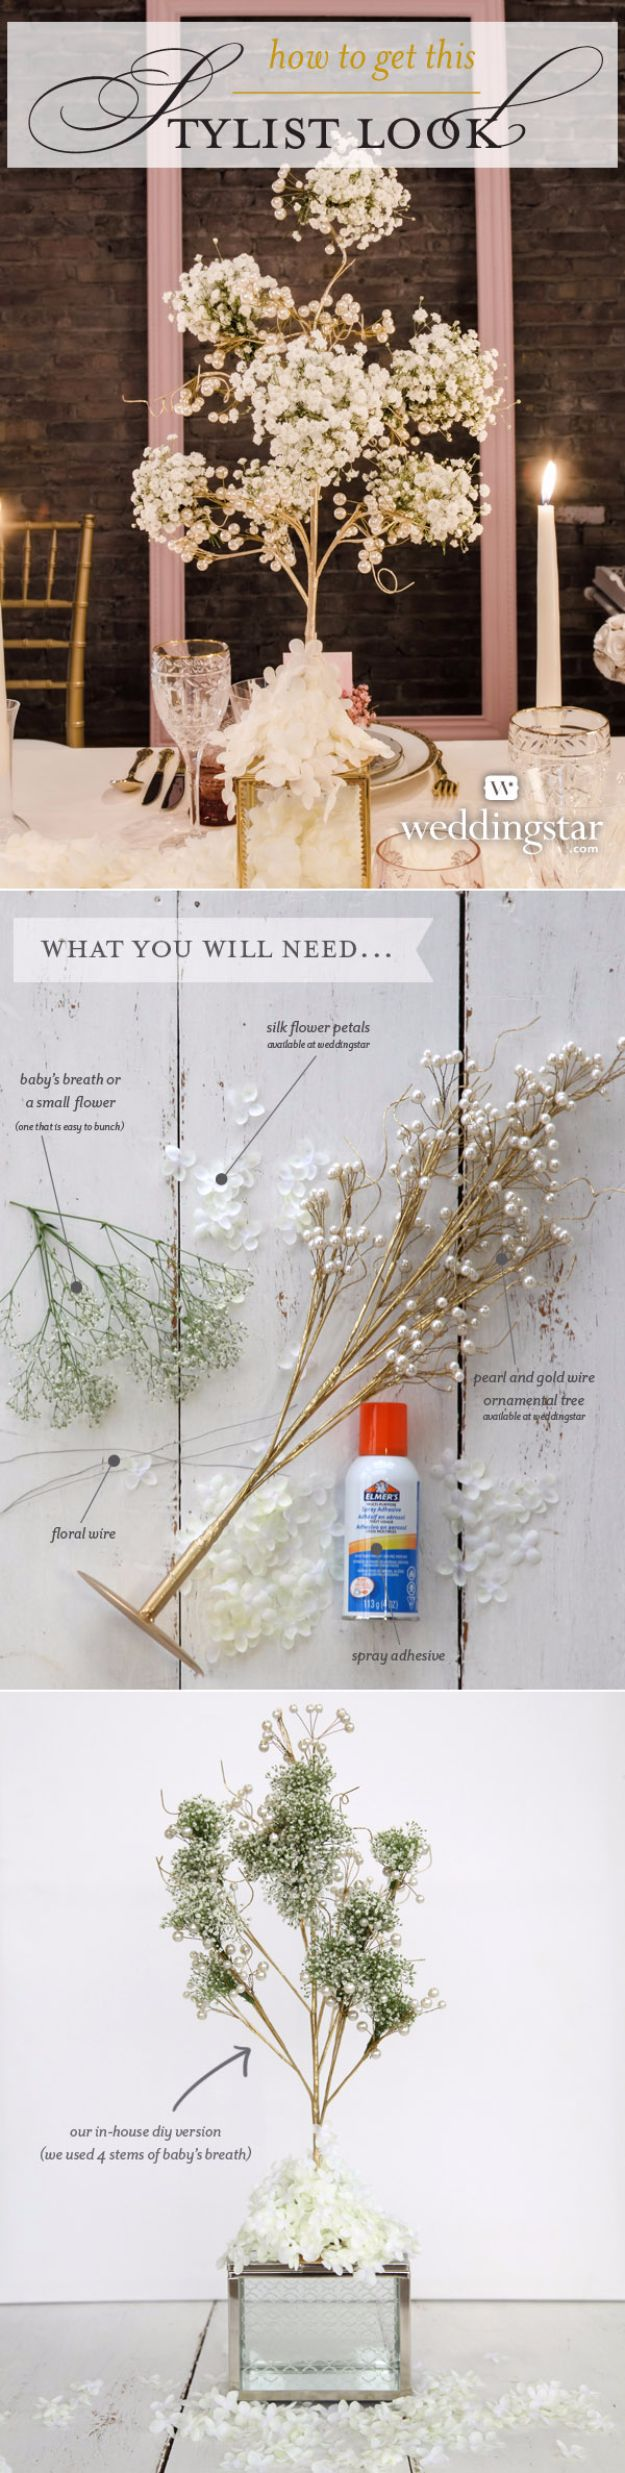 DIY Wedding Centerpieces - Baby's Breath Centerpiece - Do It Yourself Ideas for Brides and Best Centerpiece Ideas for Weddings - Step by Step Tutorials for Making Mason Jars, Rustic Crafts, Flowers, Modern Decor, Vintage and Cheap Ideas for Couples on A Budget Outdoor and Indoor Weddings #diyweddings #weddingcenterpieces #weddingdecorideas